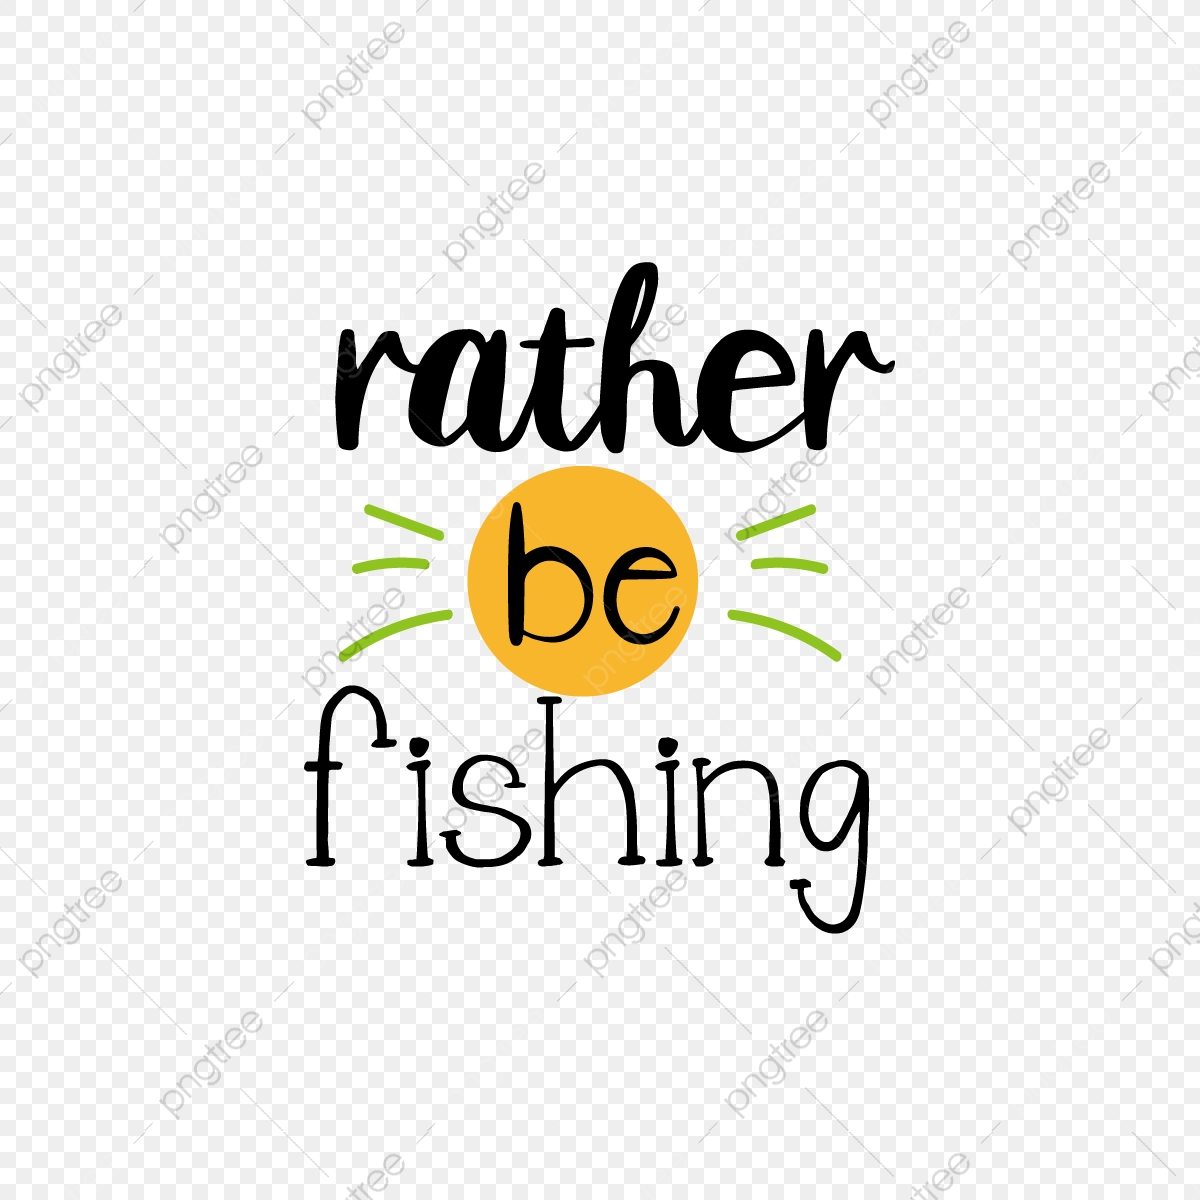 Download Svg Cartoon Black Hand Drawn Illustration Would Rather Go Fishing English Letters Font Effect Eps For Free Download